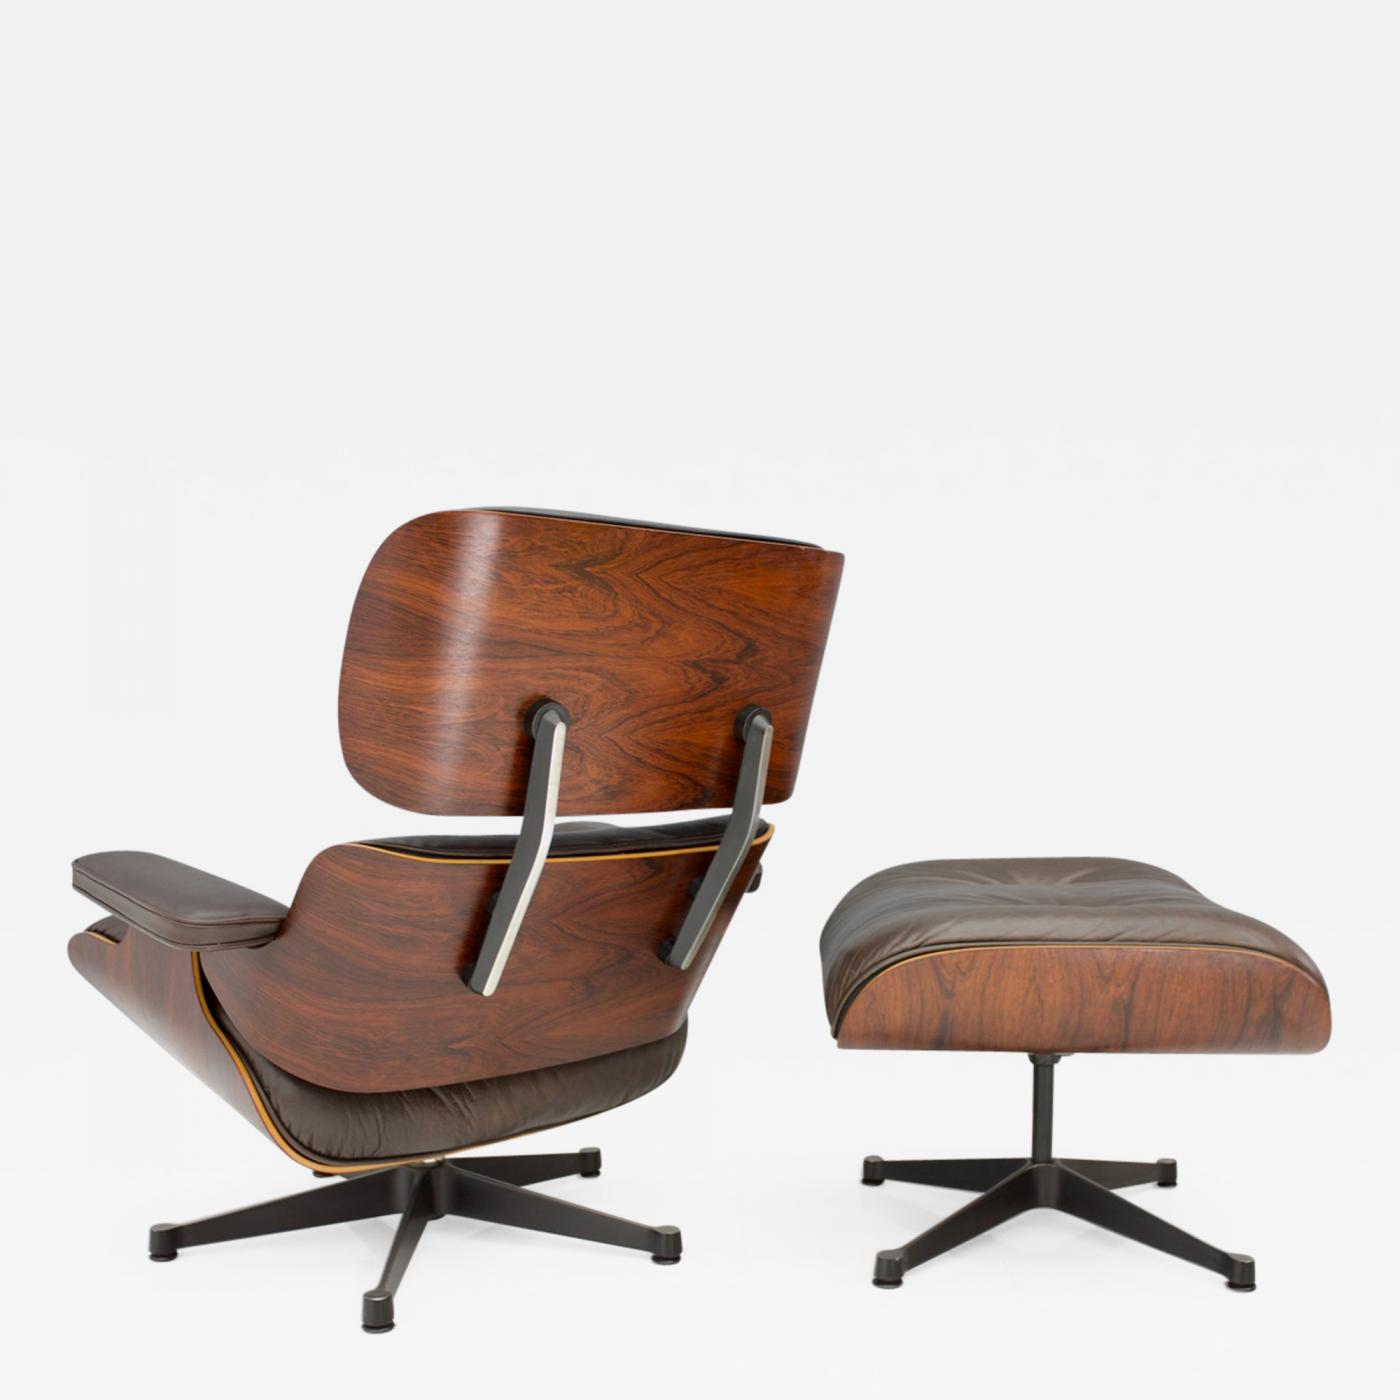 Charles Eames Lounge Stoel.Charles And Ray Eames Charles Eames Lounge Chair With Ottoman In Chocolate Brown Leather